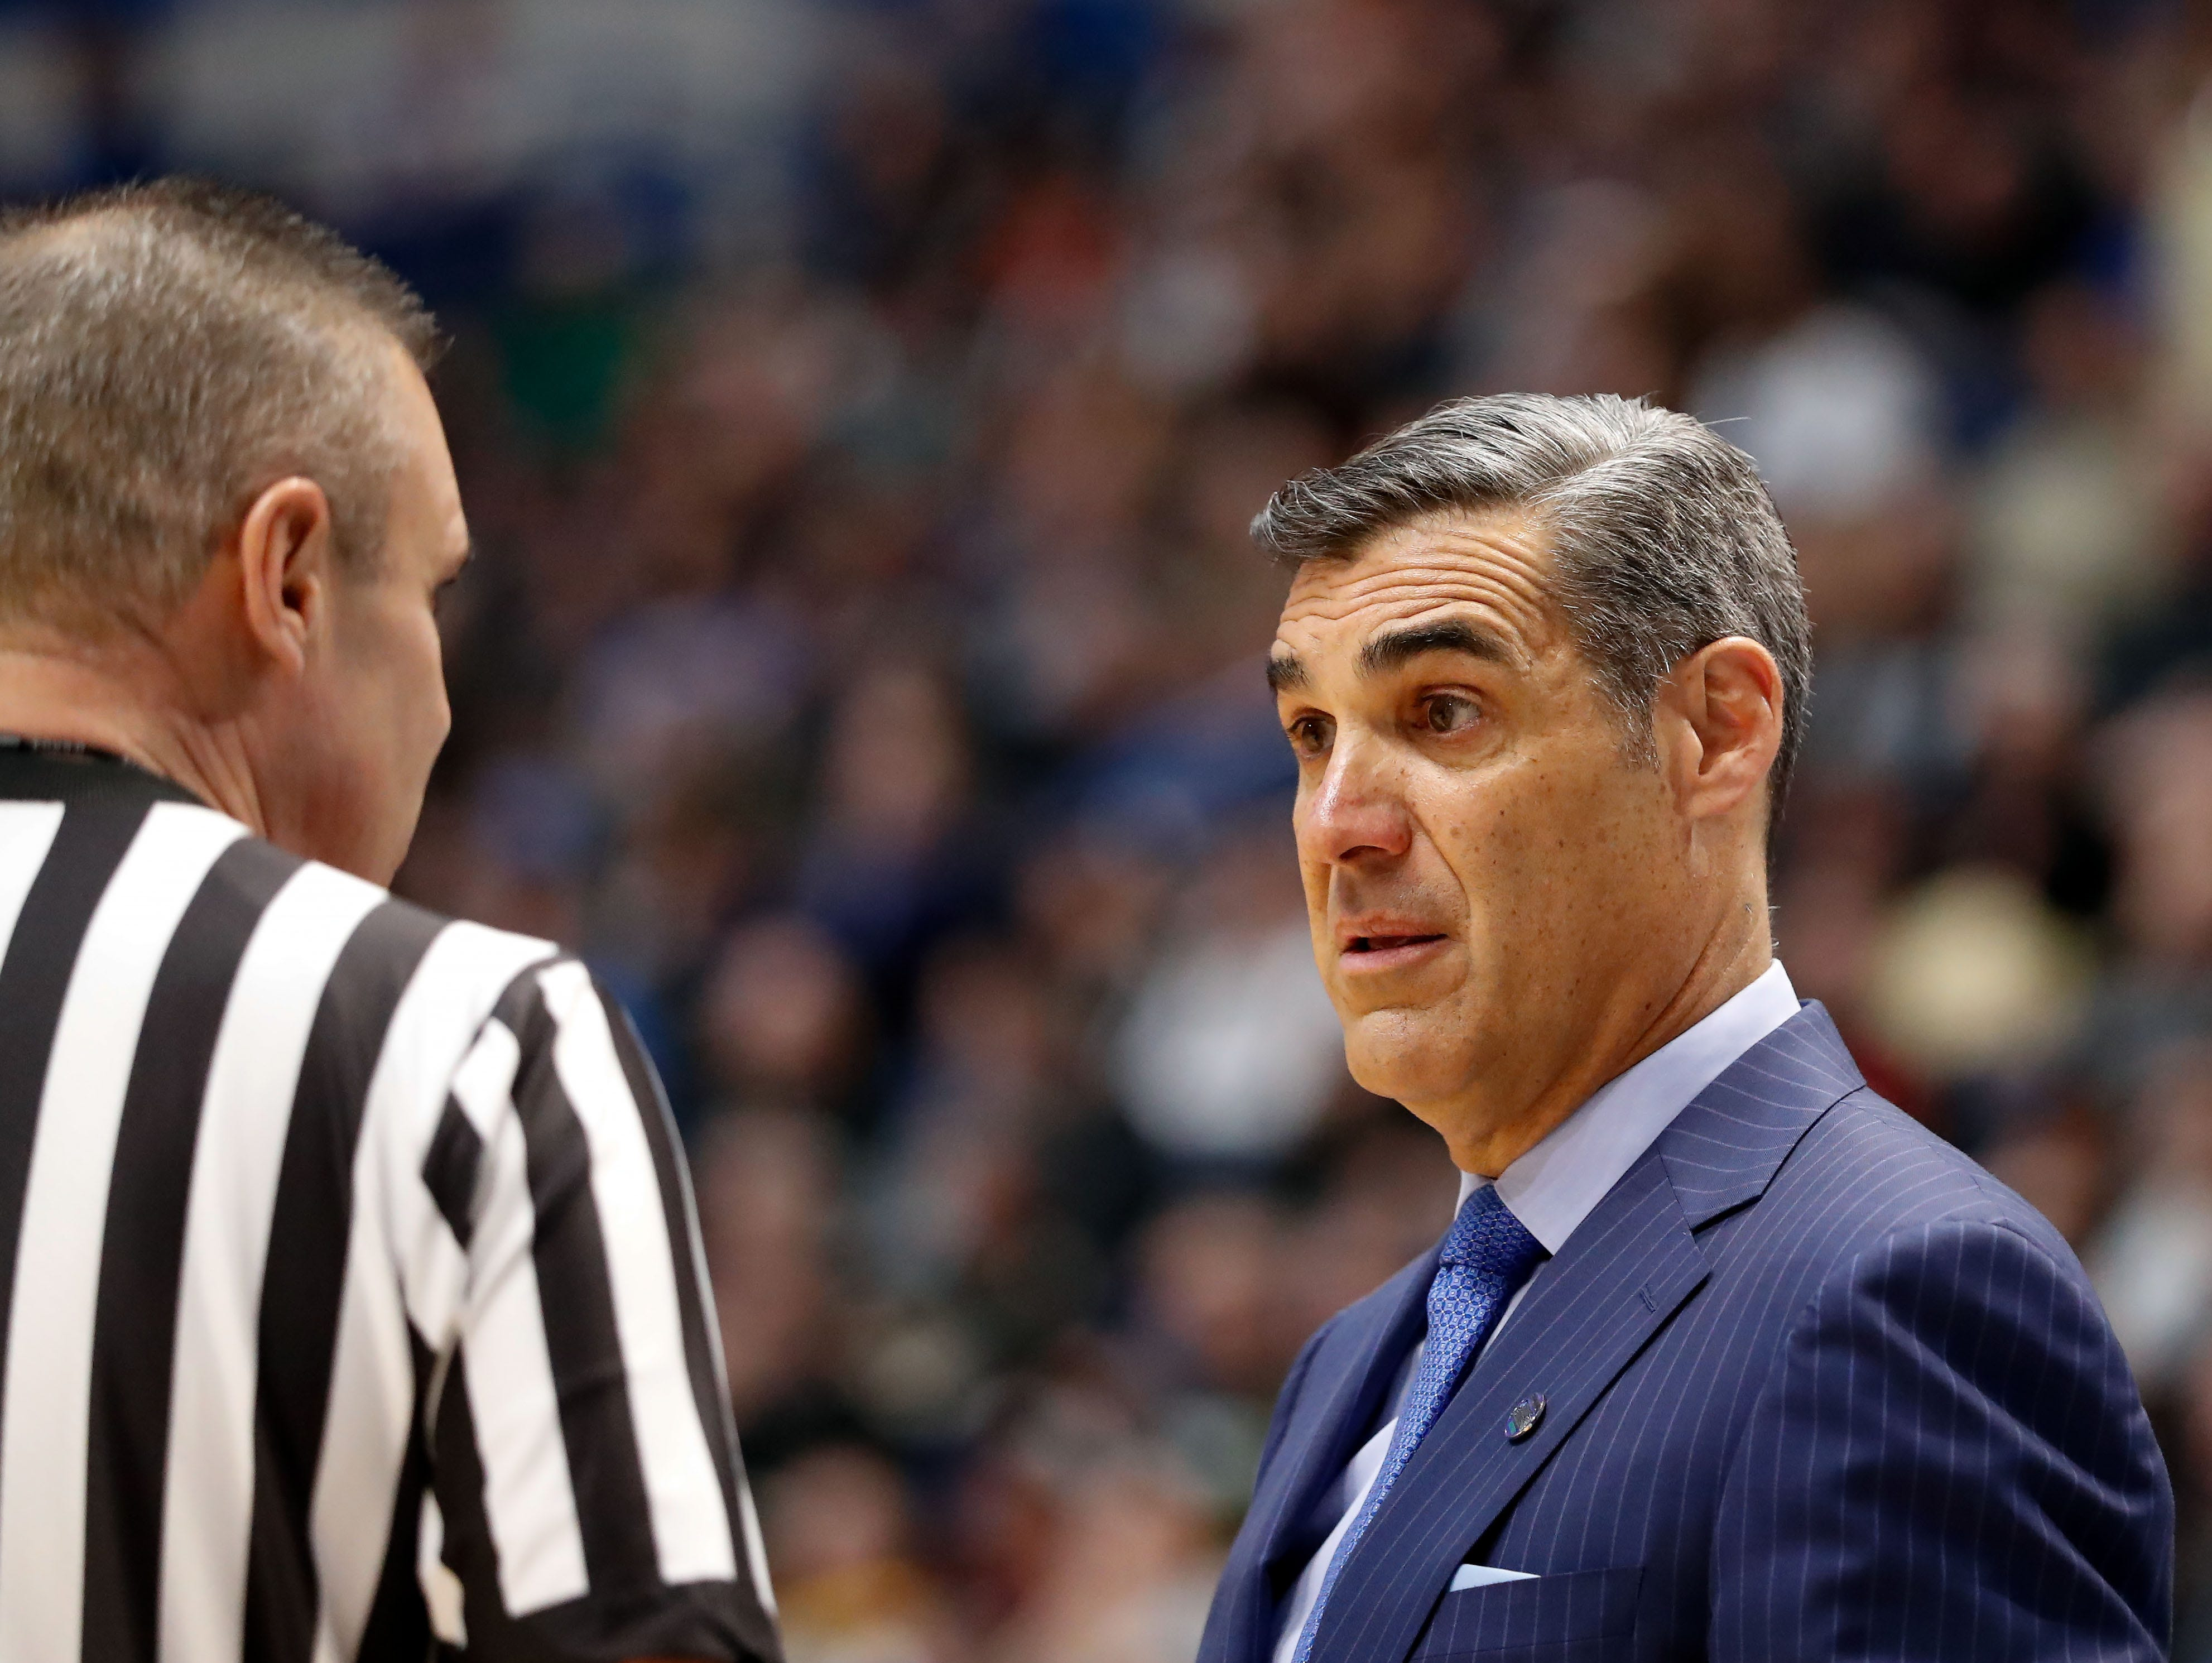 Mar 23, 2019; Hartford, CT, USA; Villanova Wildcats head coach Jay Wright talks with a referee during the first half of a game against the Purdue Boilermakers in the second round of the 2019 NCAA Tournament at XL Center. Mandatory Credit: David Butler II-USA TODAY Sports